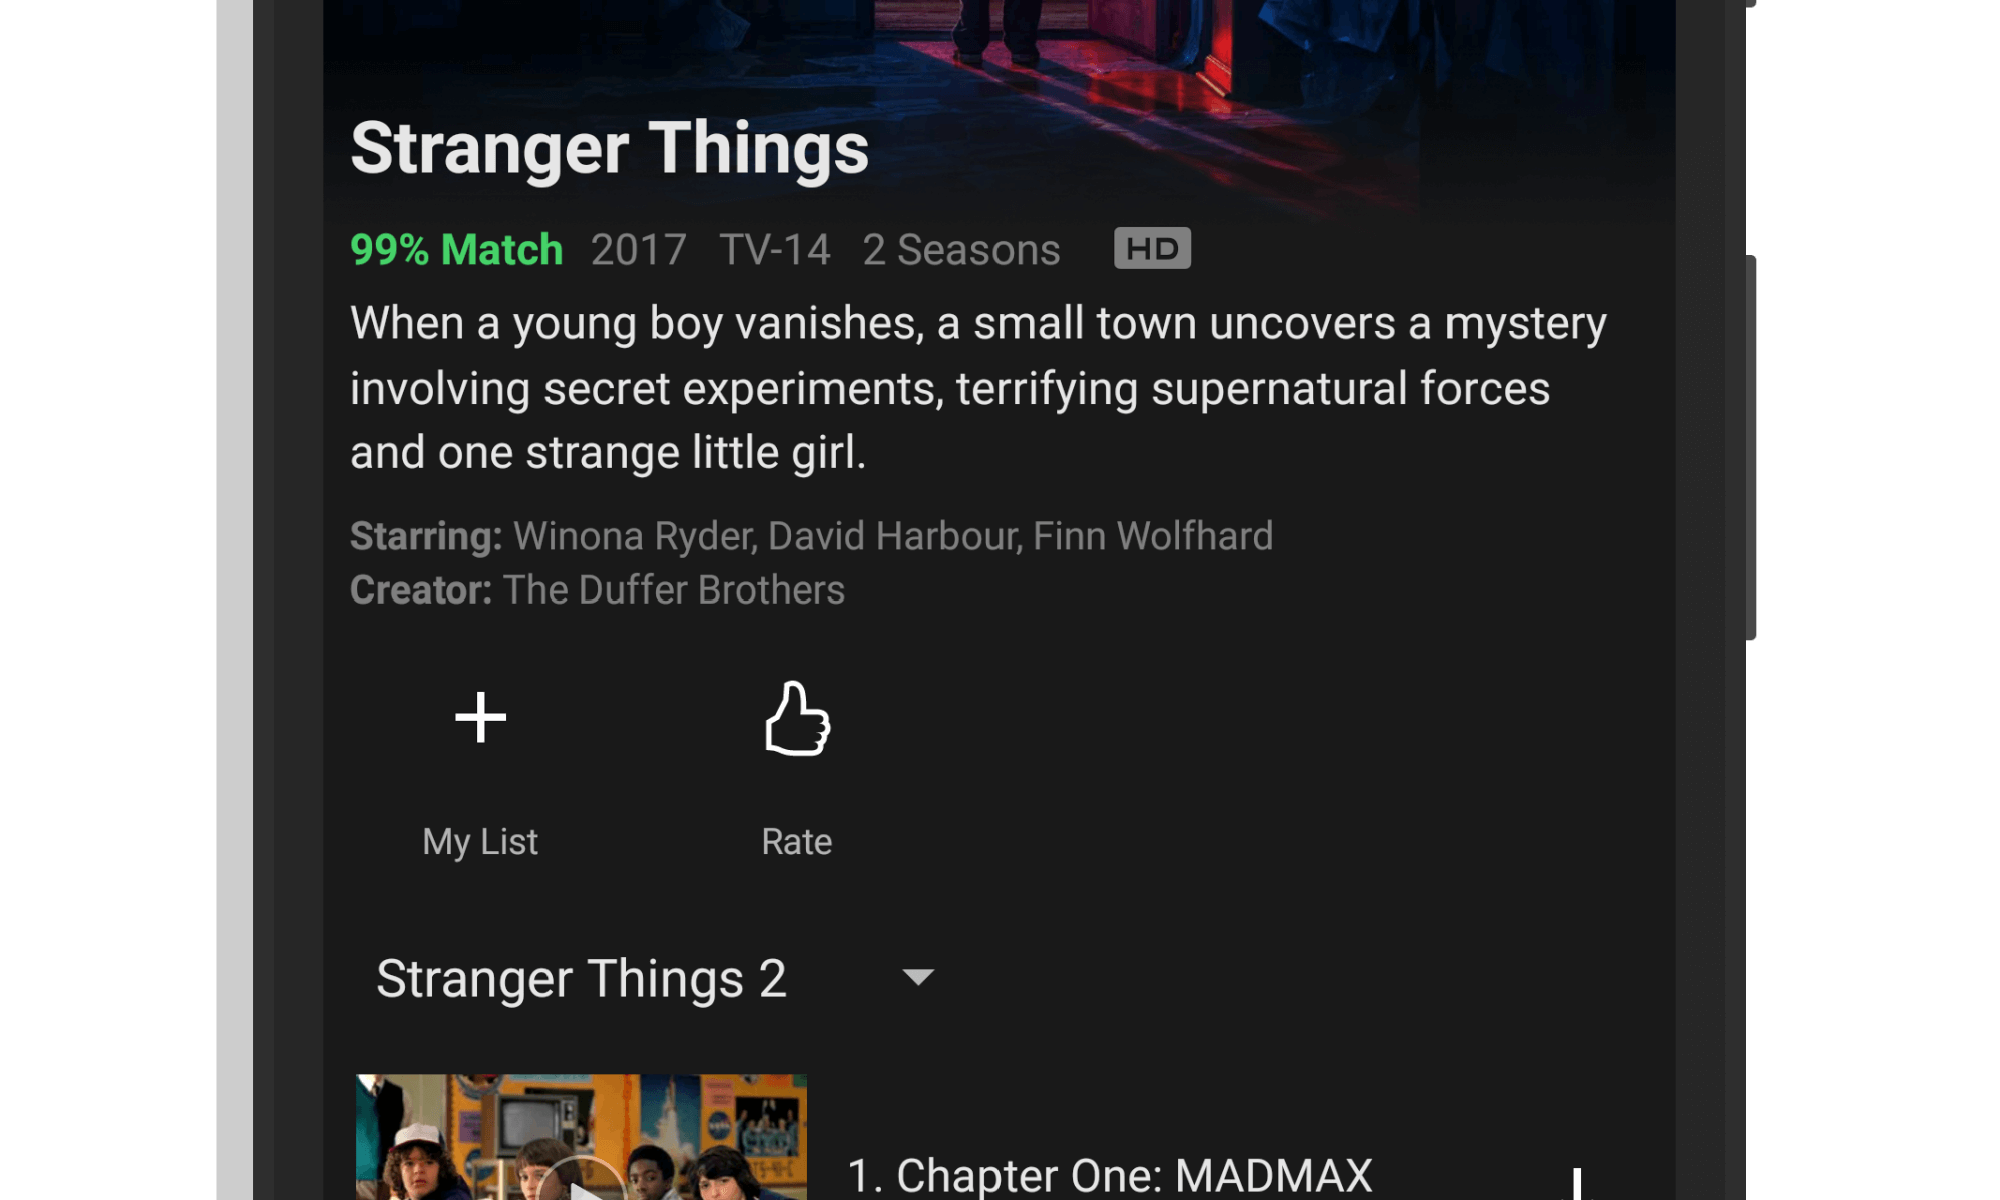 Stranger Things Season 2 on Netflix